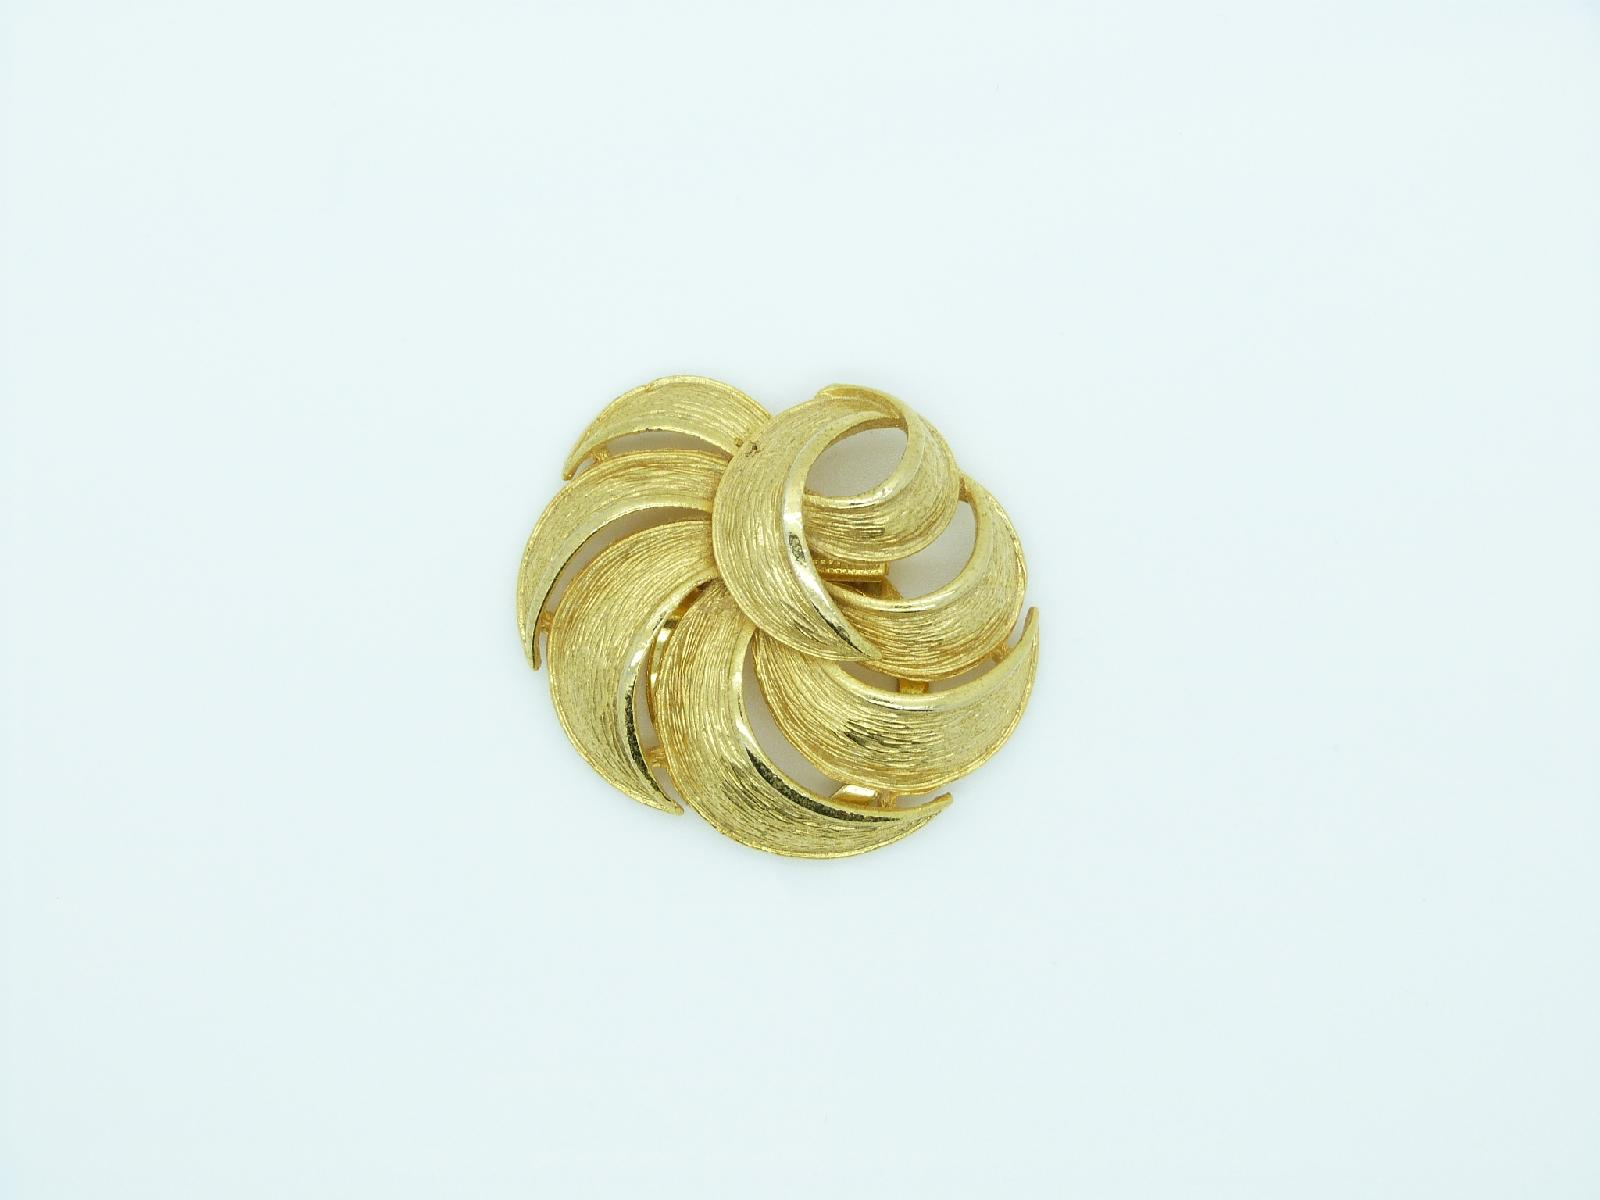 Vintage 60s Large Goldtone Textured Swirl Effect Scarf Clip 5cms